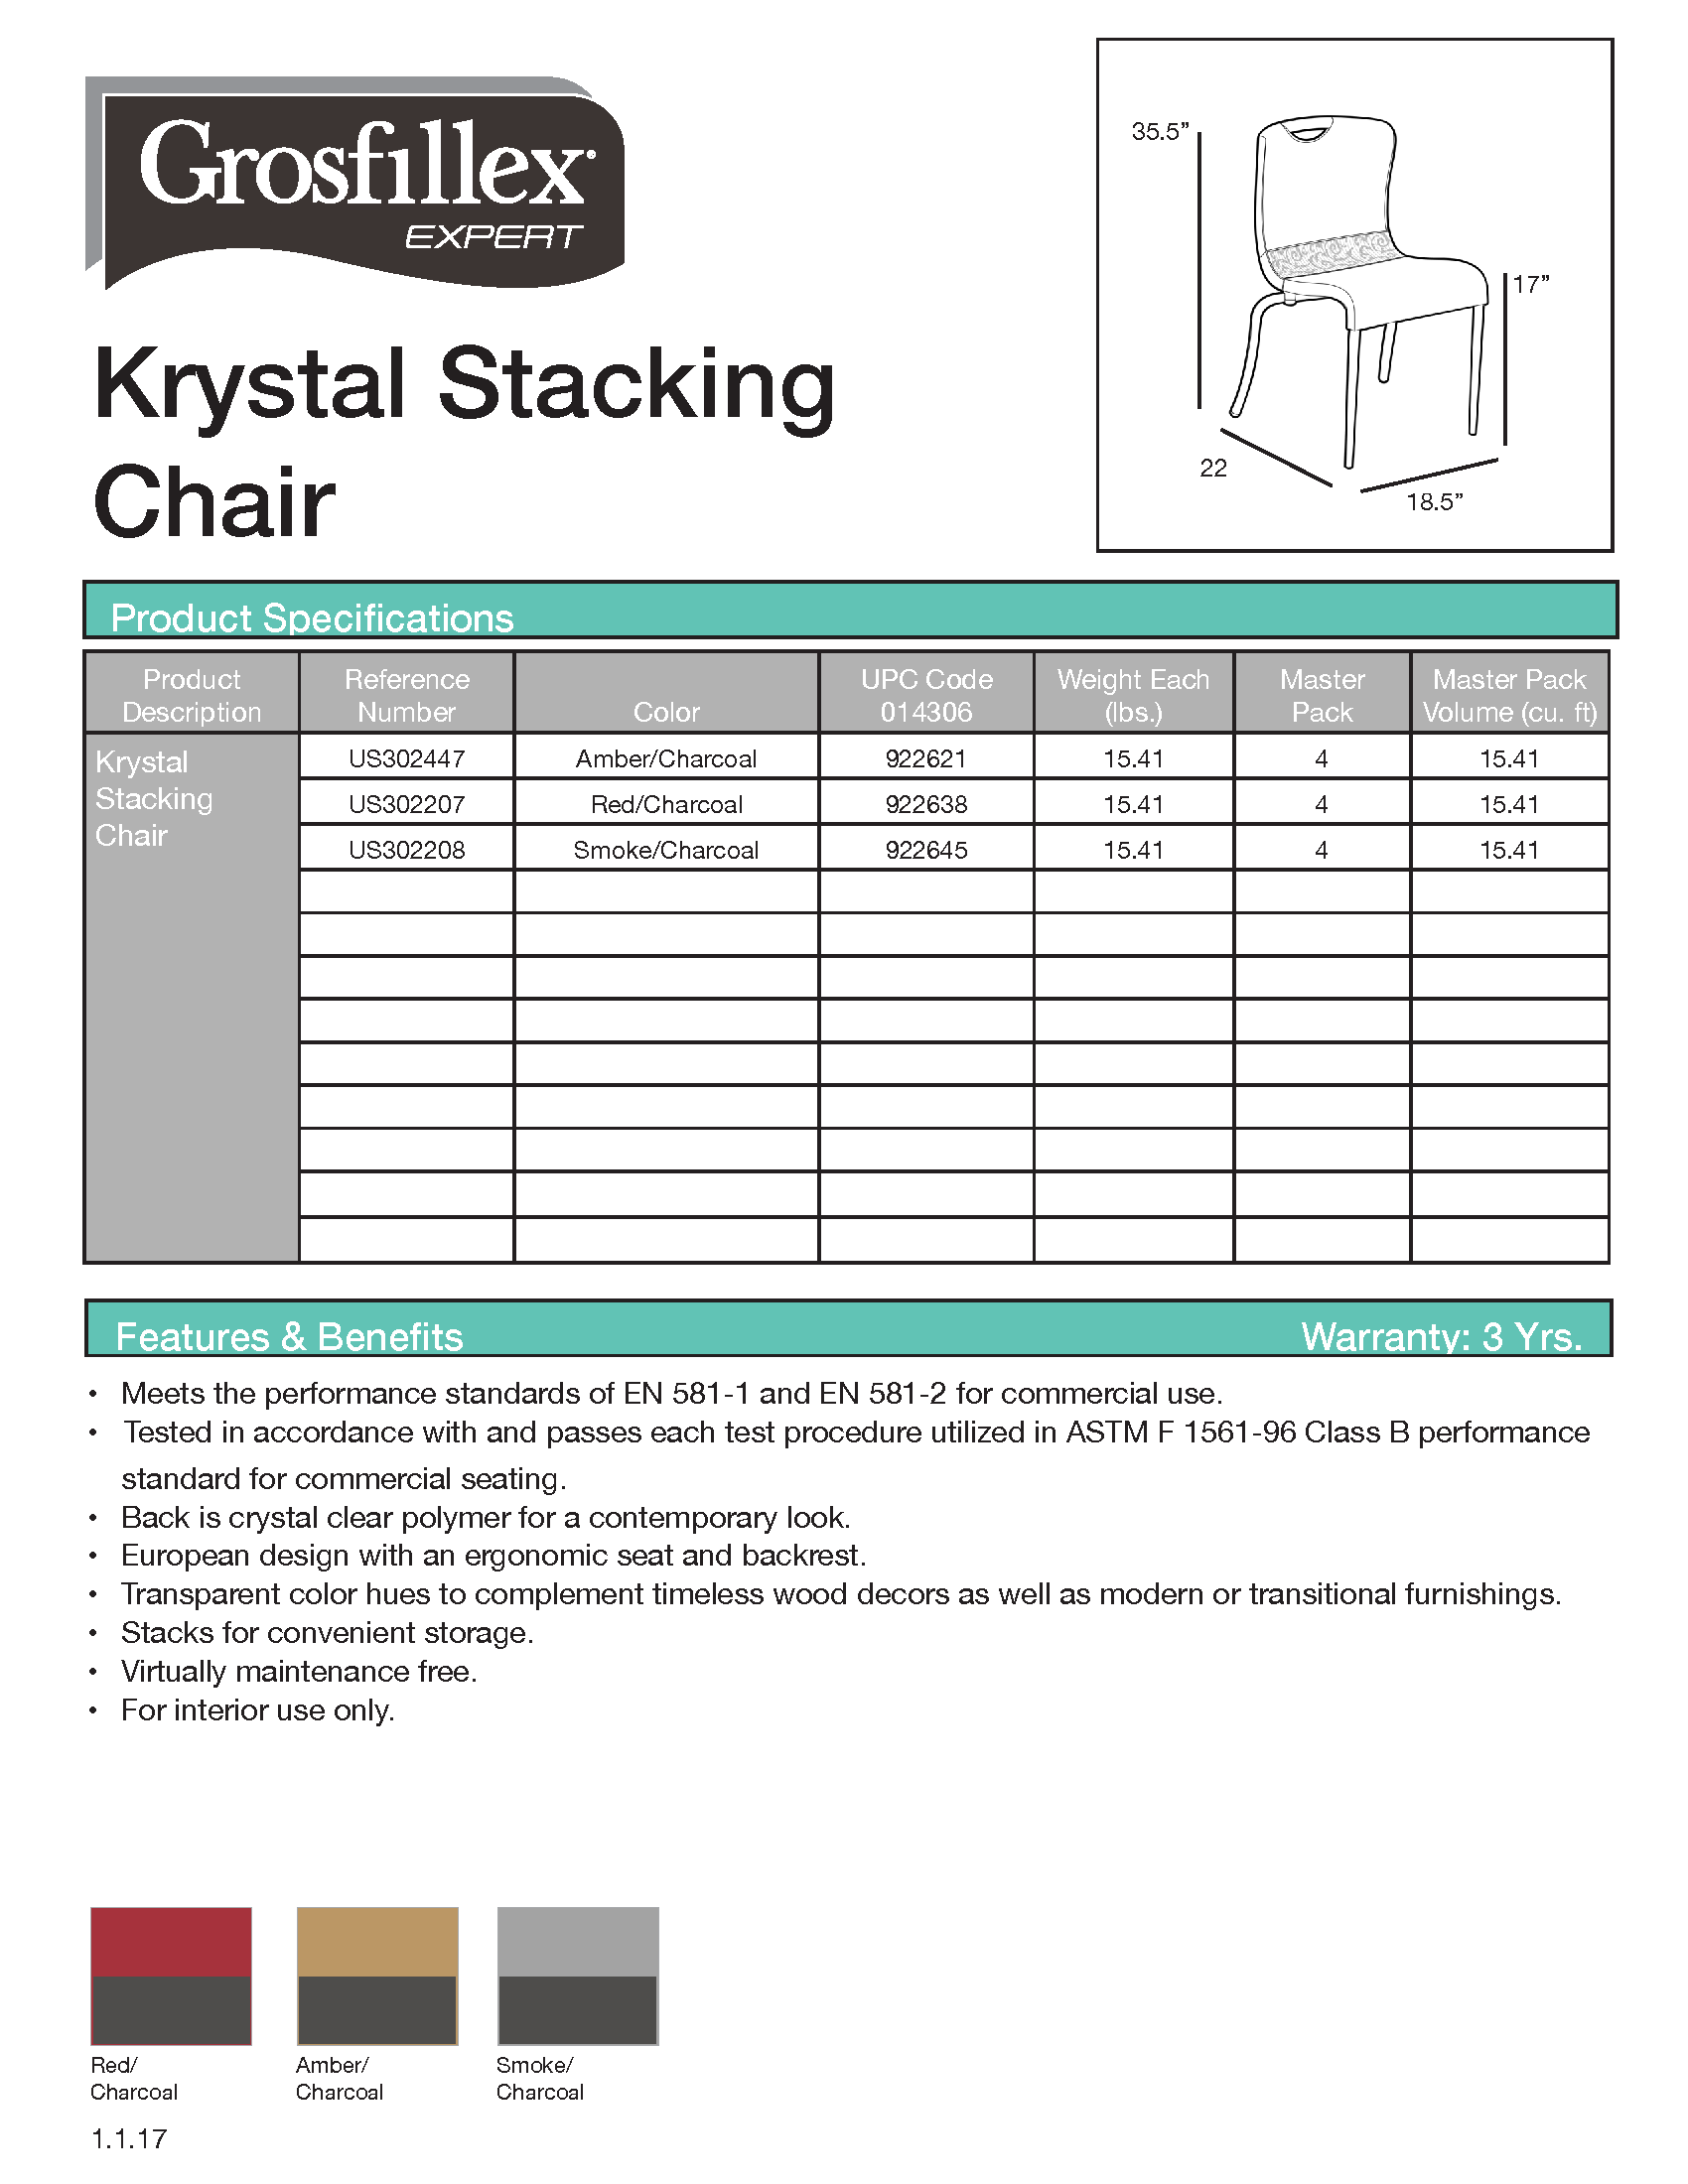 Krystal Chair